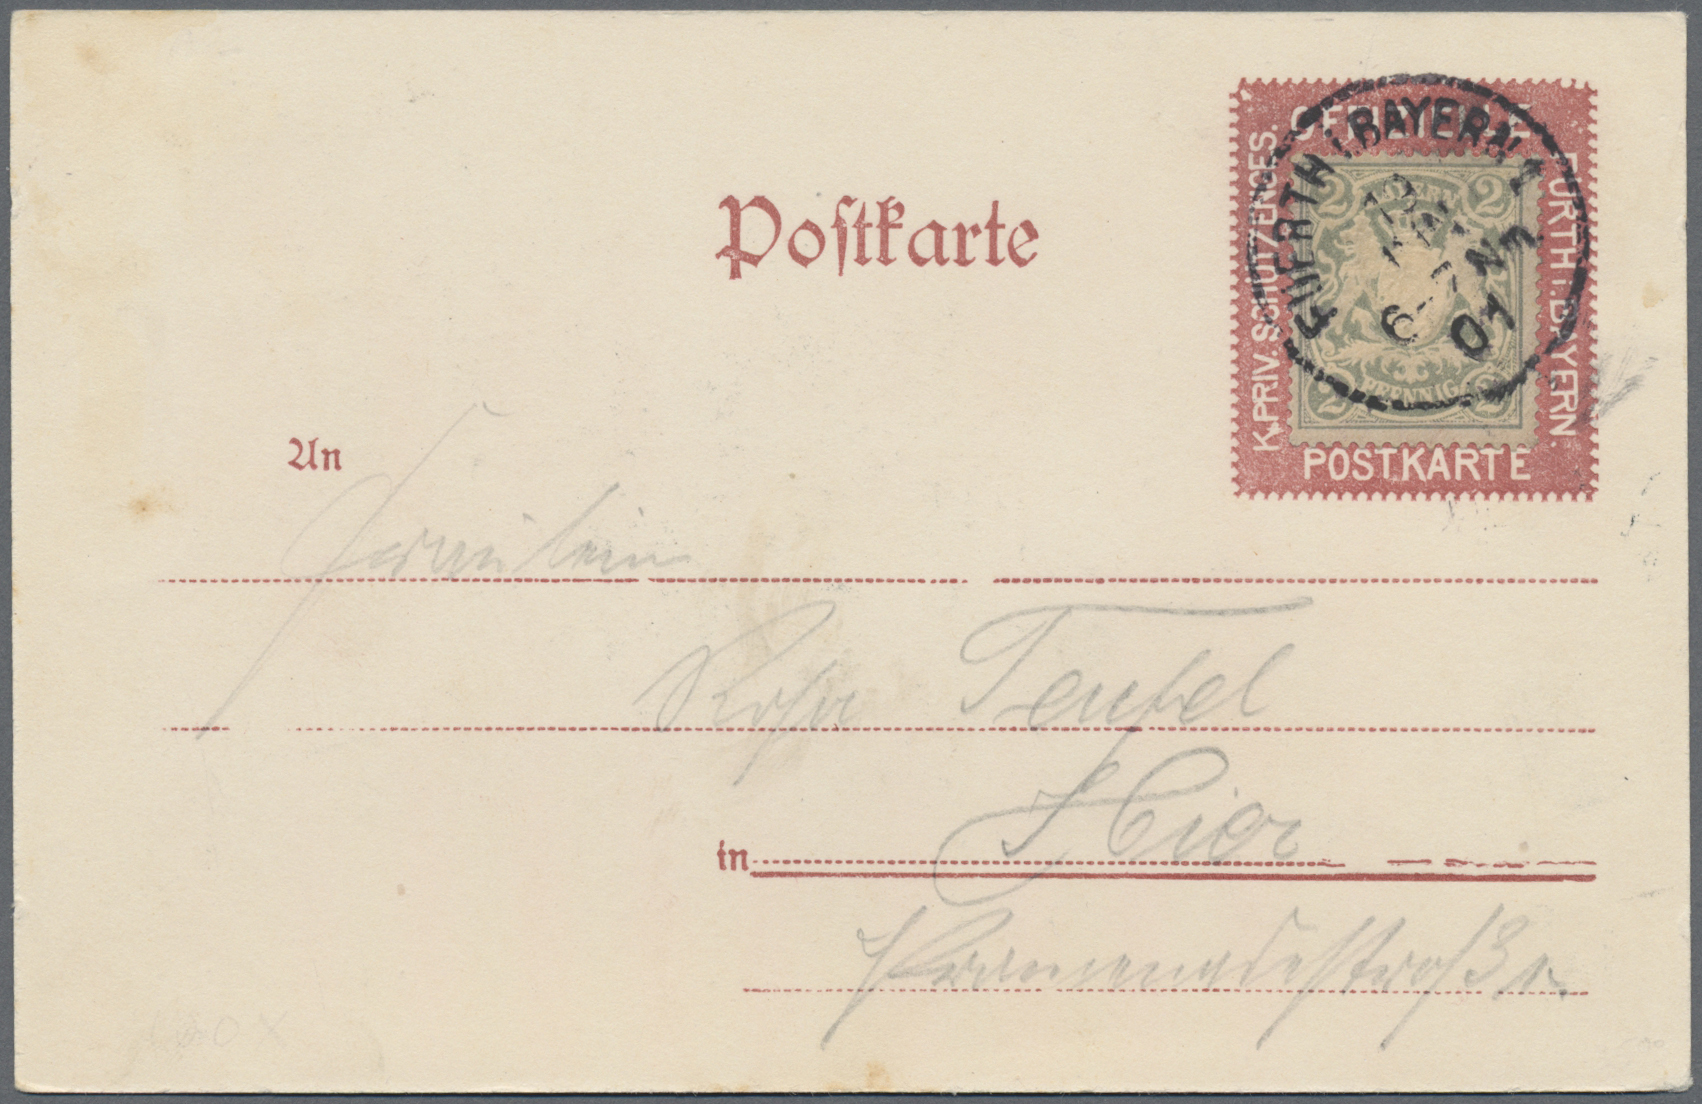 Lot 28172 - Bayern - Marken und Briefe  -  Auktionshaus Christoph Gärtner GmbH & Co. KG Sale #46 Gollcetions Germany - including the suplement